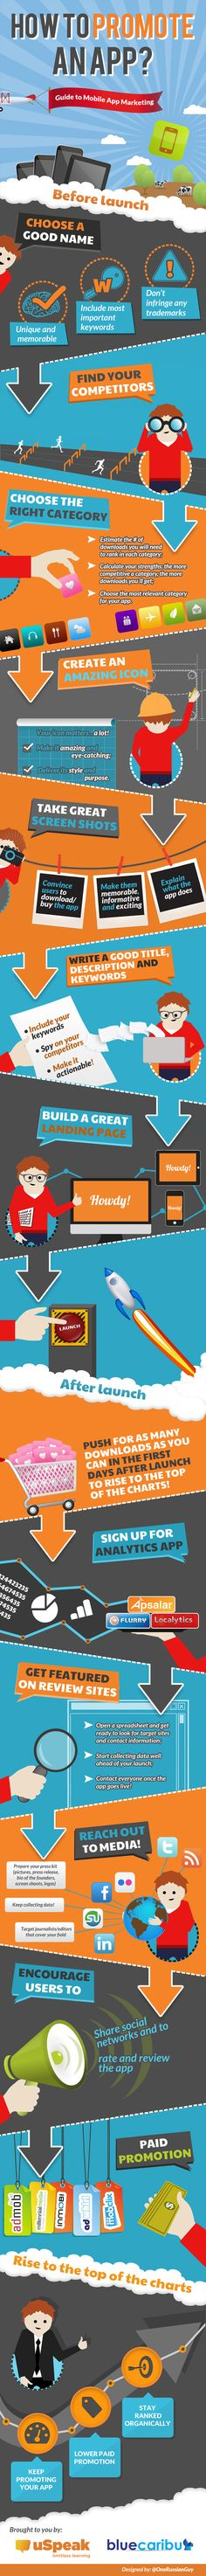 How to promote an APP #infografia #infographic #internet #marketing